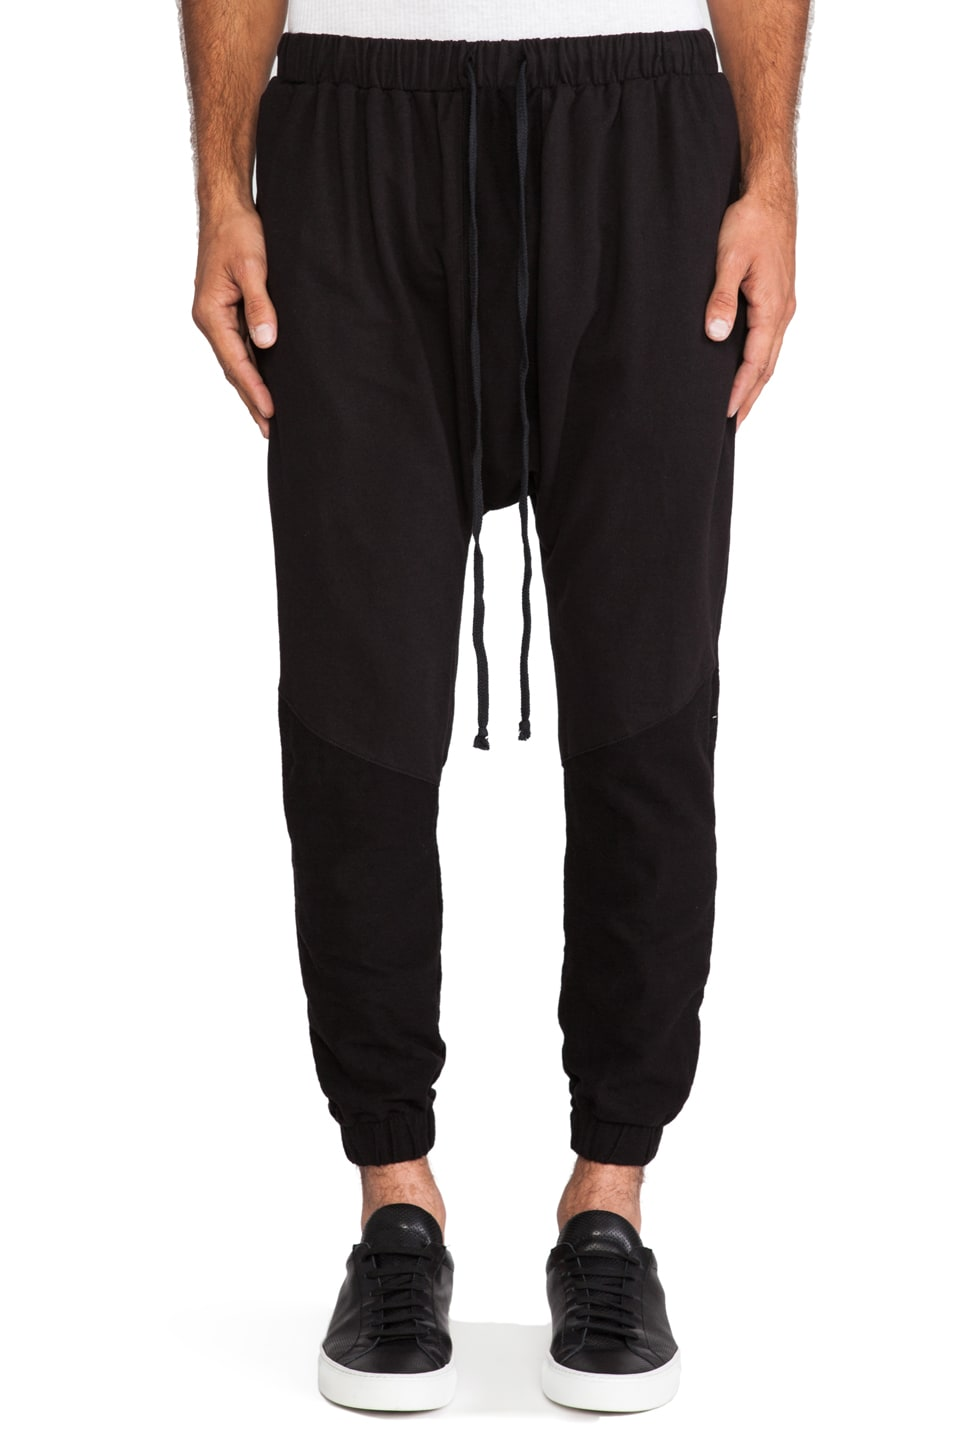 Daniel Patrick Roaming Jogger in Black